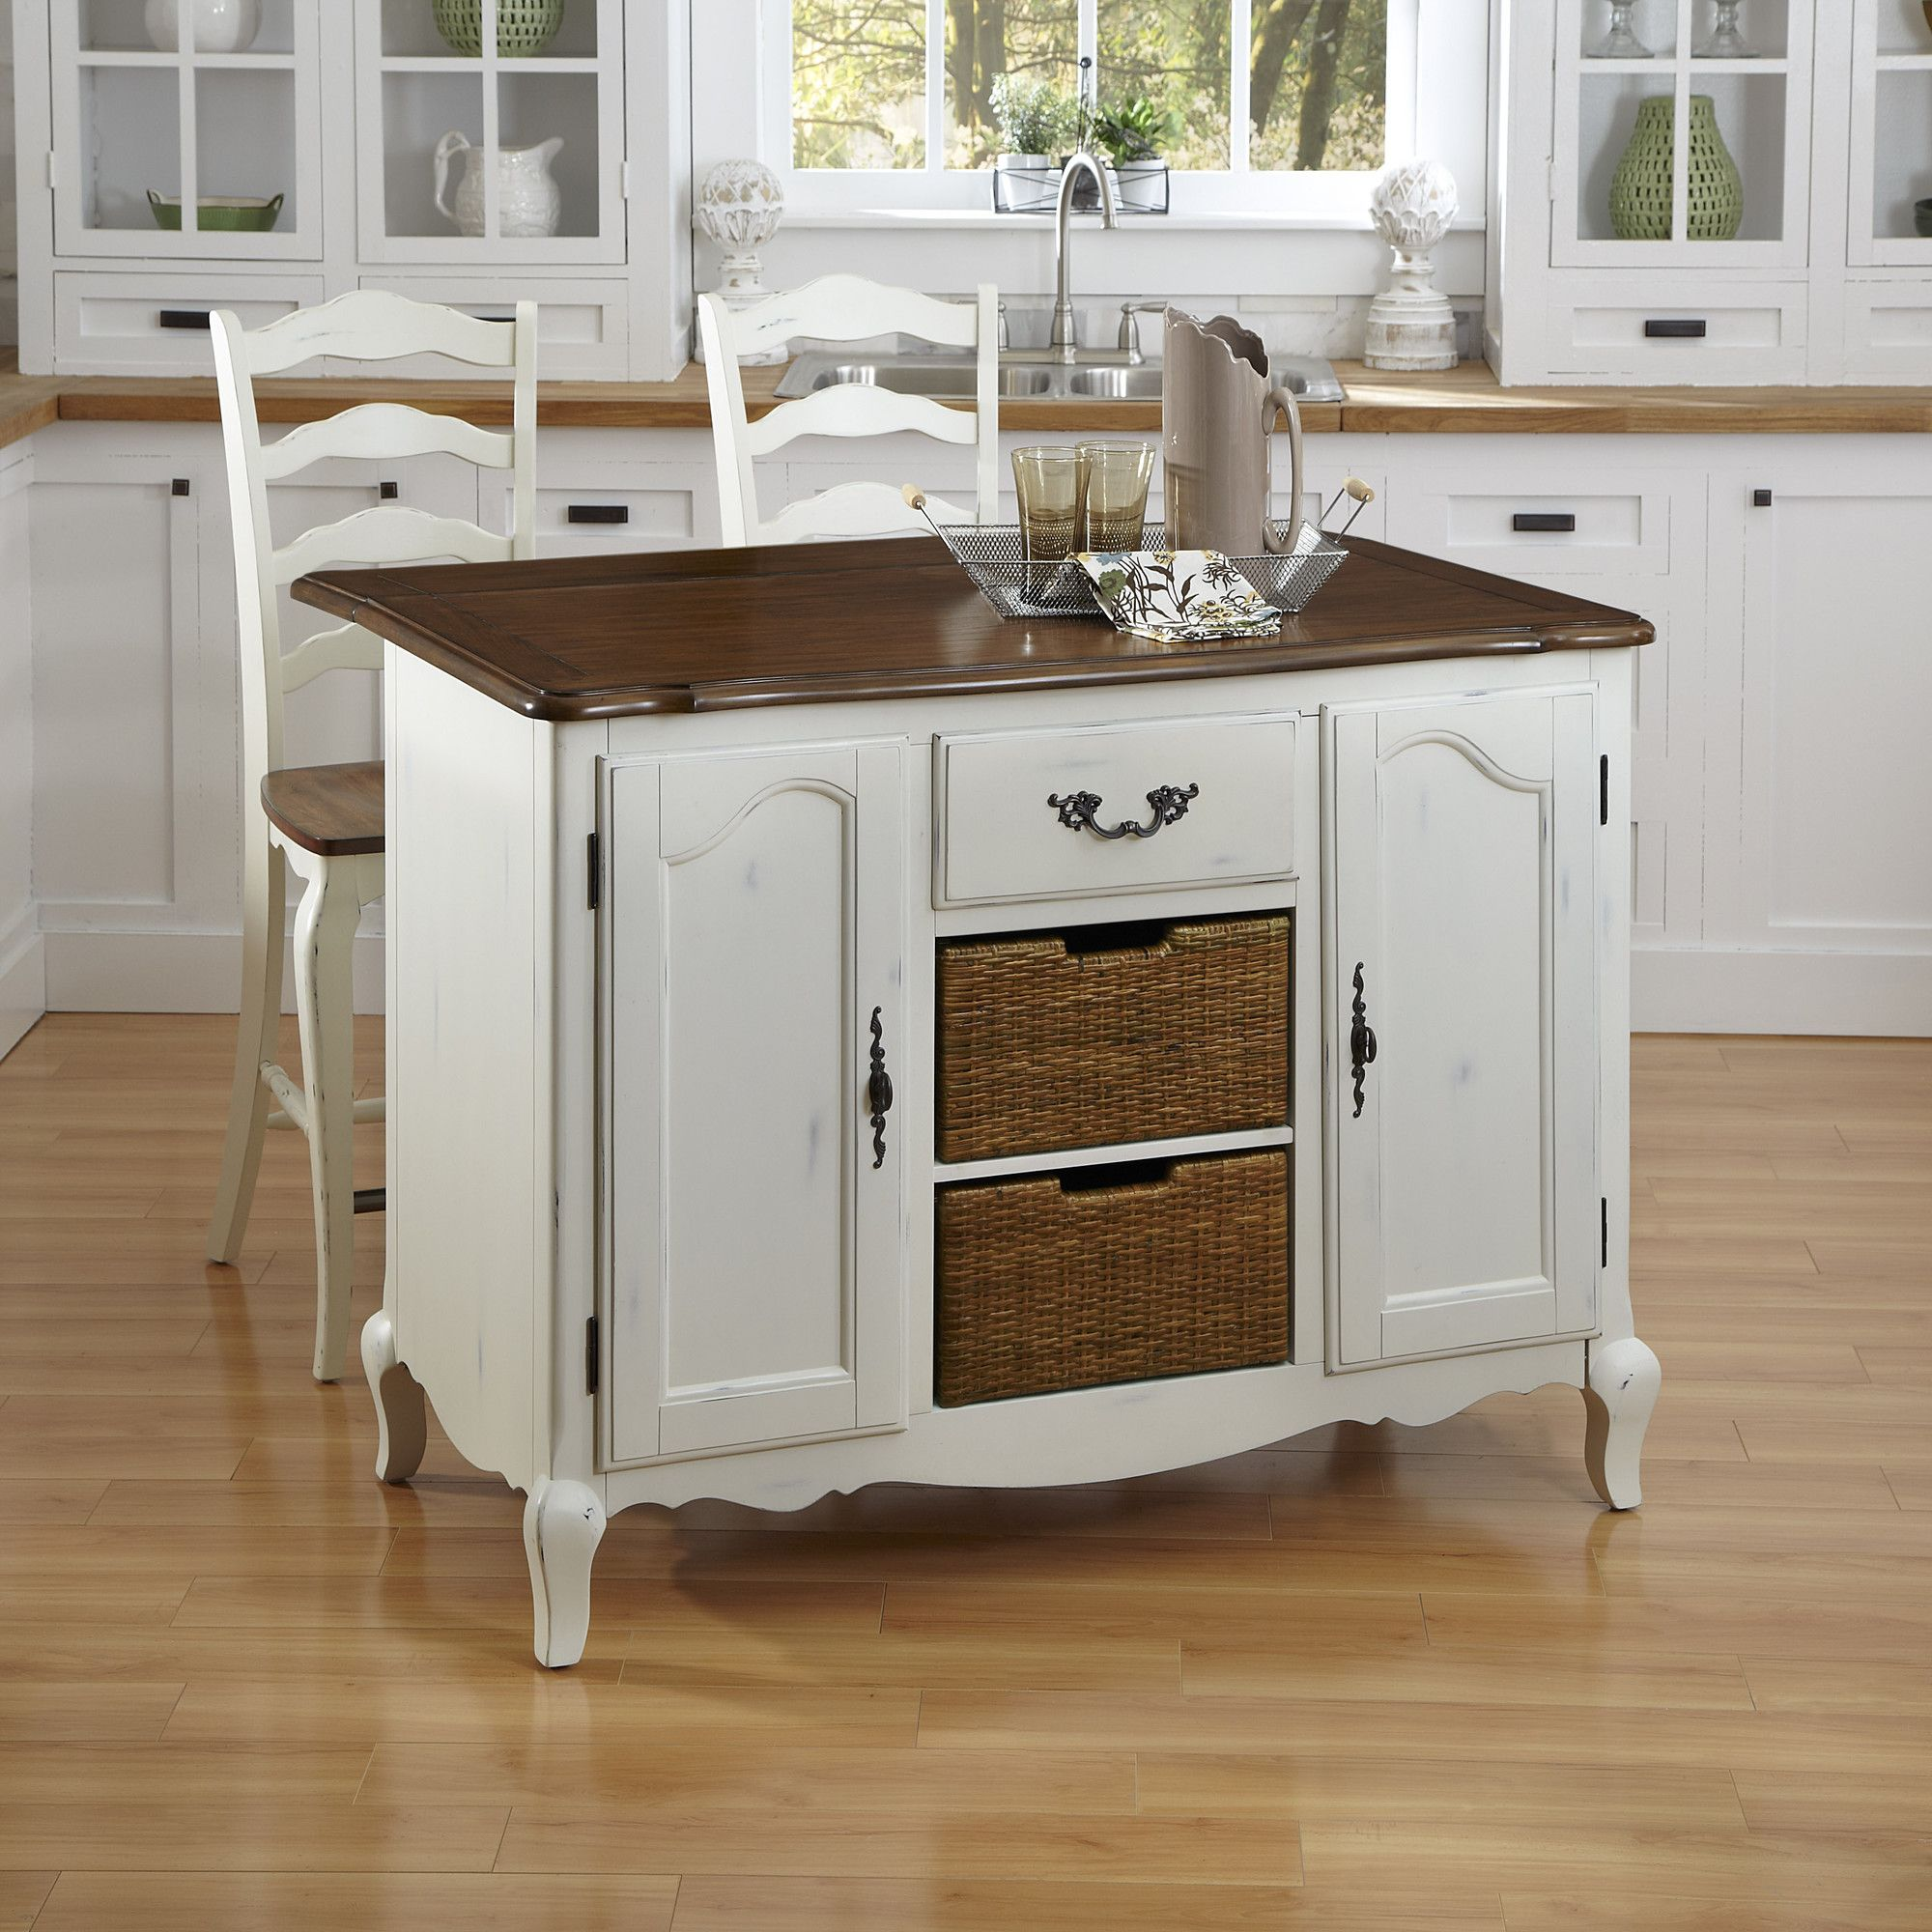 French Countryside Kitchen Island Wayfair Browse By Room - Wayfair kitchen island